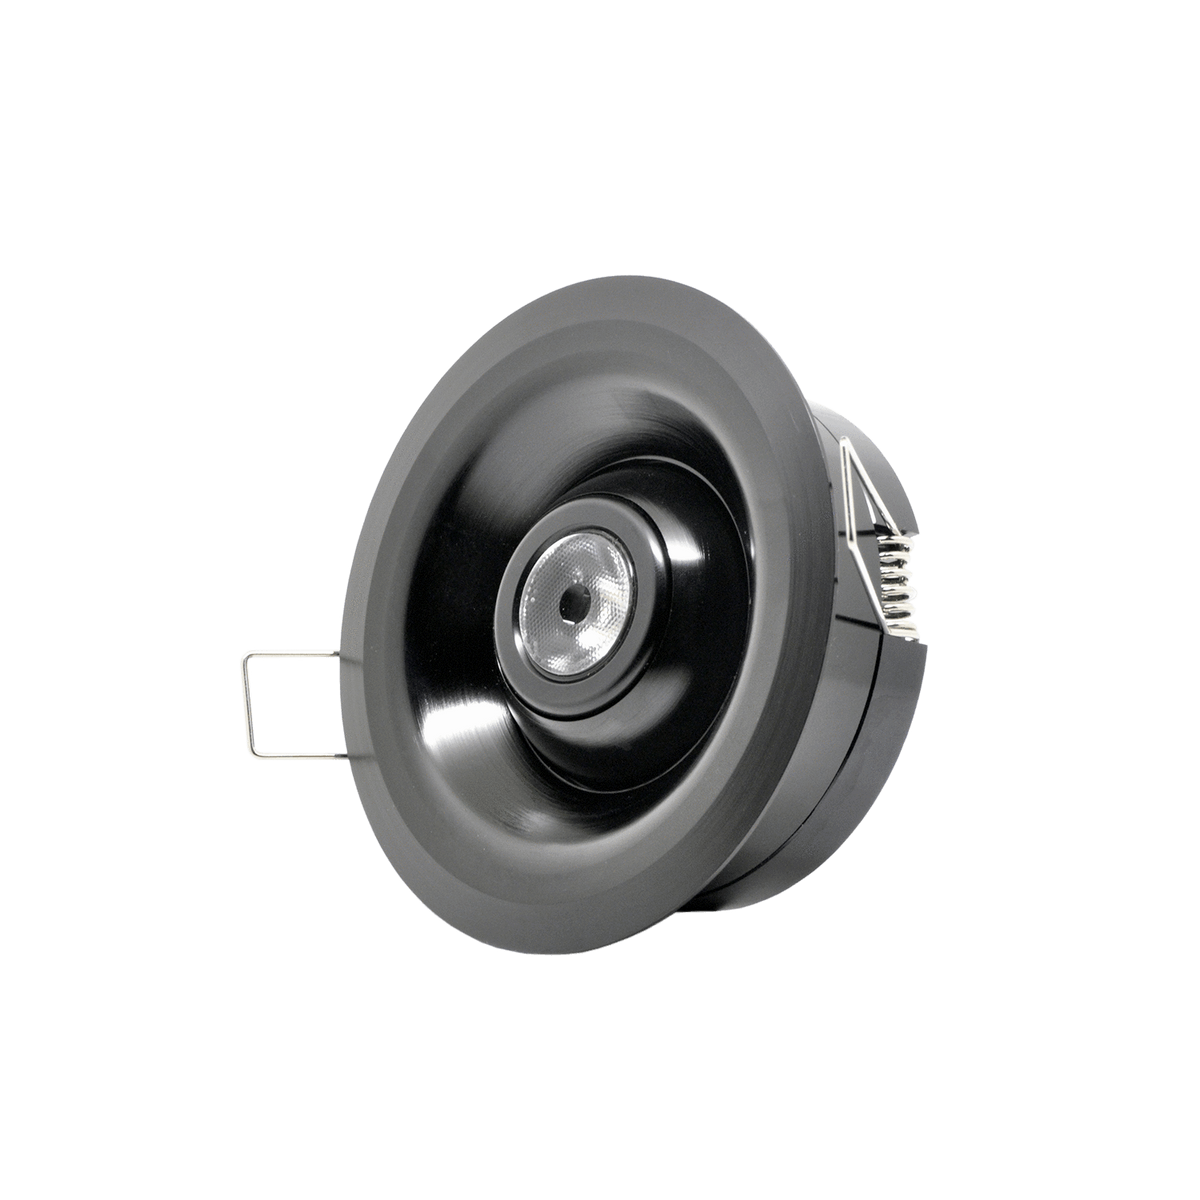 Gantom Fisheye Fixture Trim Spring Mounted